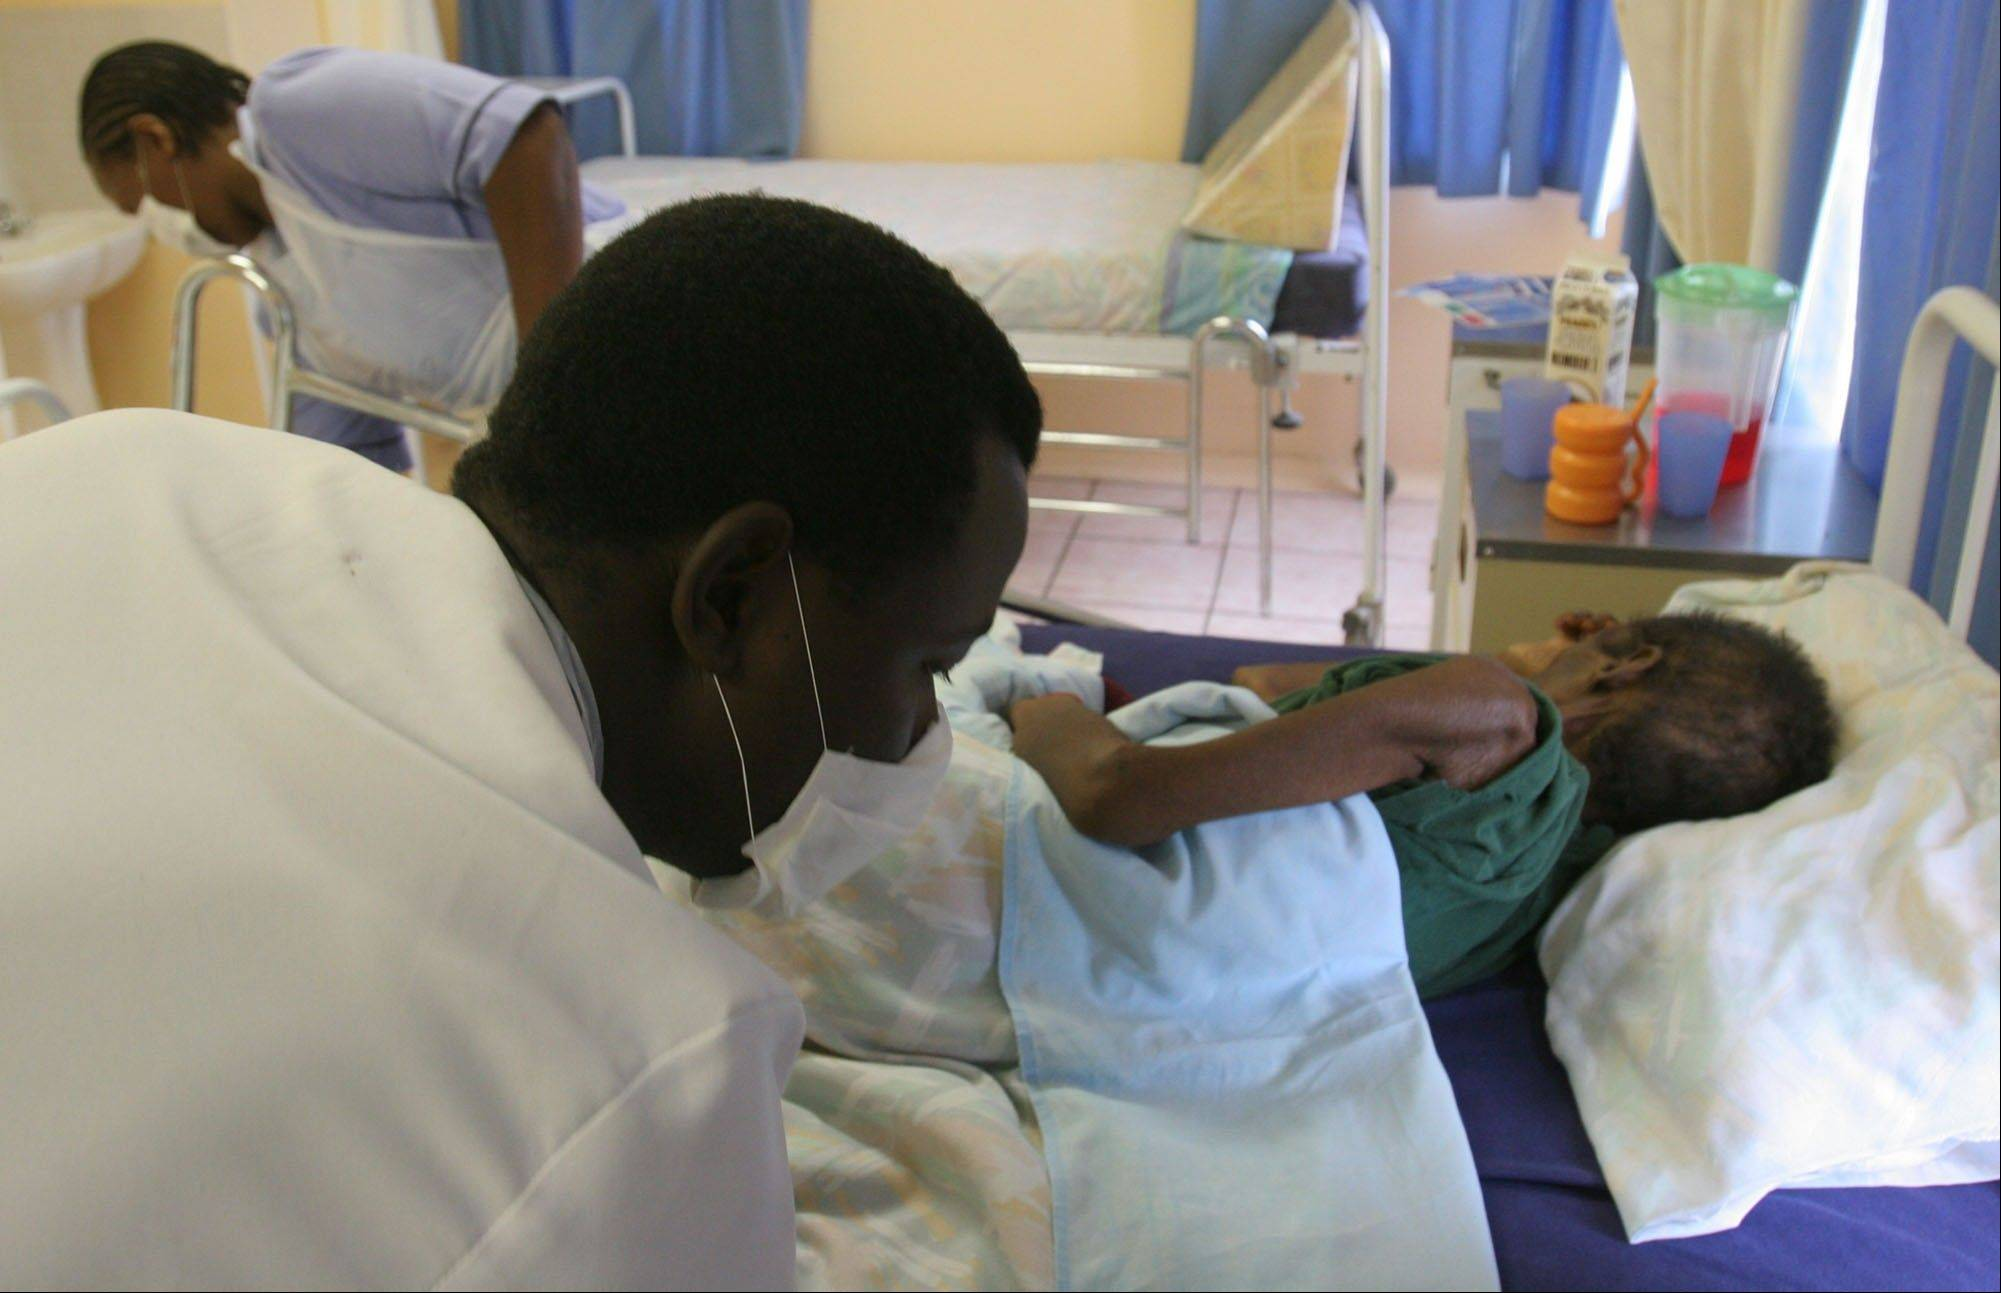 A patient is nursed in the hospice at the AIDS Care Training and Support Initiative at White River Junction, South Africa. The center, partly funded by the President�s Emergency Plan for AIDS Relief supports the development of a community-based palliative care unit, which provides care, education and training for staff and community caregivers, volunteer counseling and testing facilities.